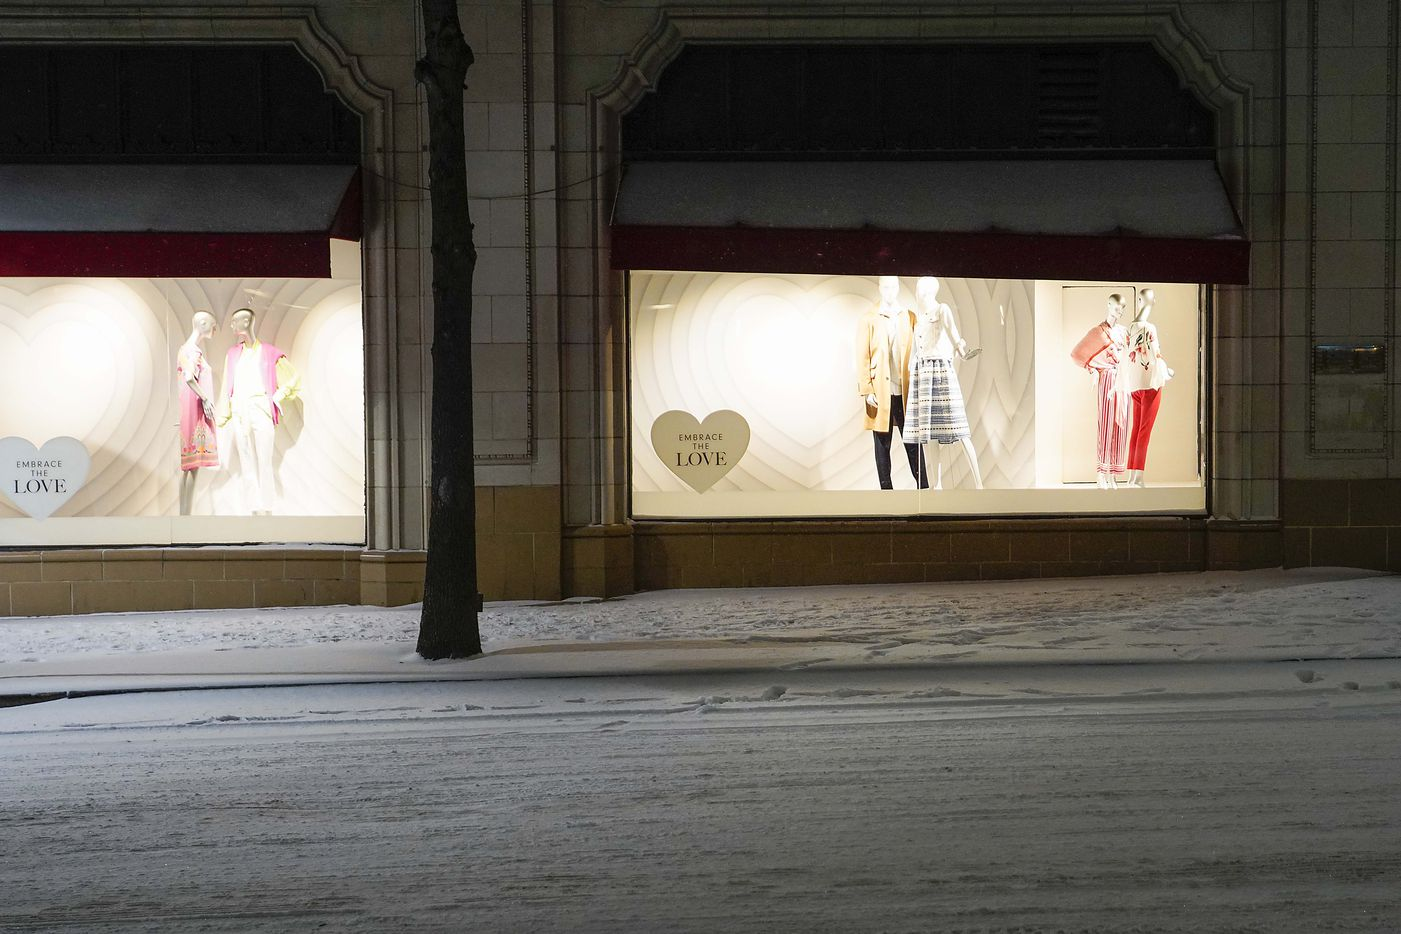 Valentines Day themed windows at the Neiman Marcus flagship store downtown are framed by snowy streets as a winter storm brings snow and freezing temperatures to North Texas on Sunday, Feb. 14, 2021, in Dallas.